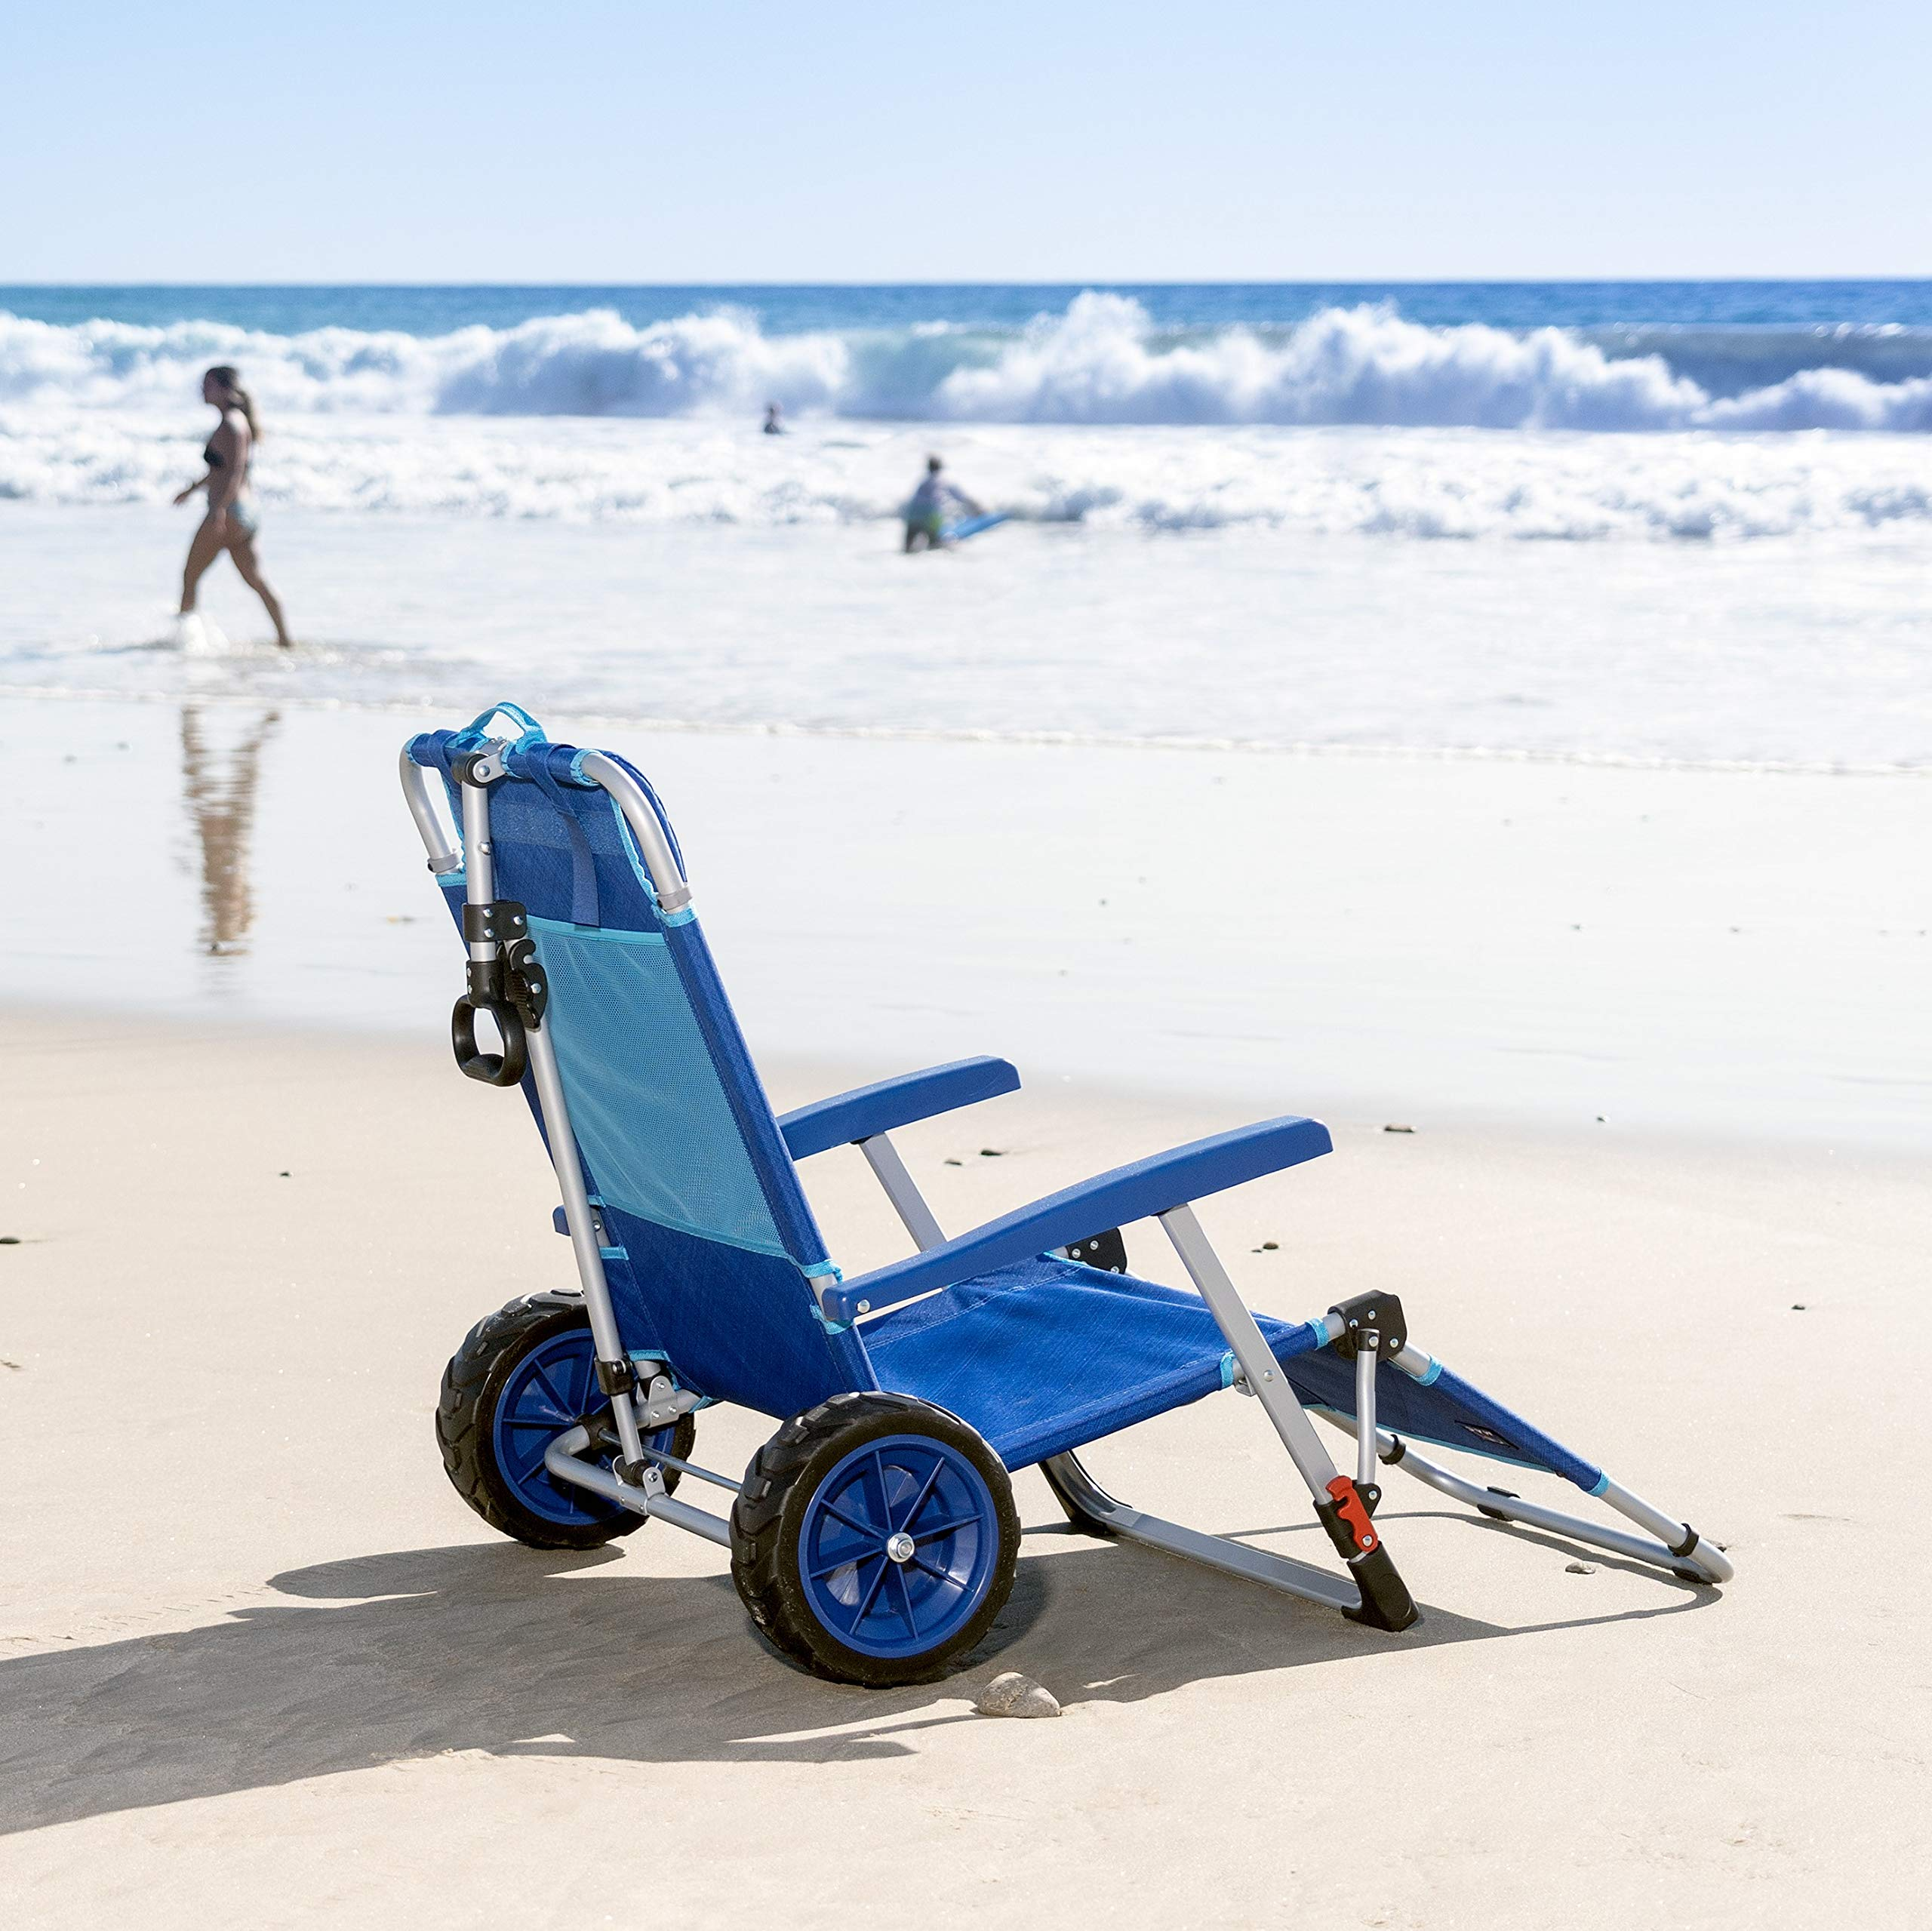 Amazon Com Mac Sports 2 In 1 Beach Day Folding Lounge Chair Cargo Cart For Outdoors Sunbathing Sun Chair Tanning Chair Portable Lightweight Lounger For Patio Collapsible With All Terrain Wheels Blue Sports Outdoors